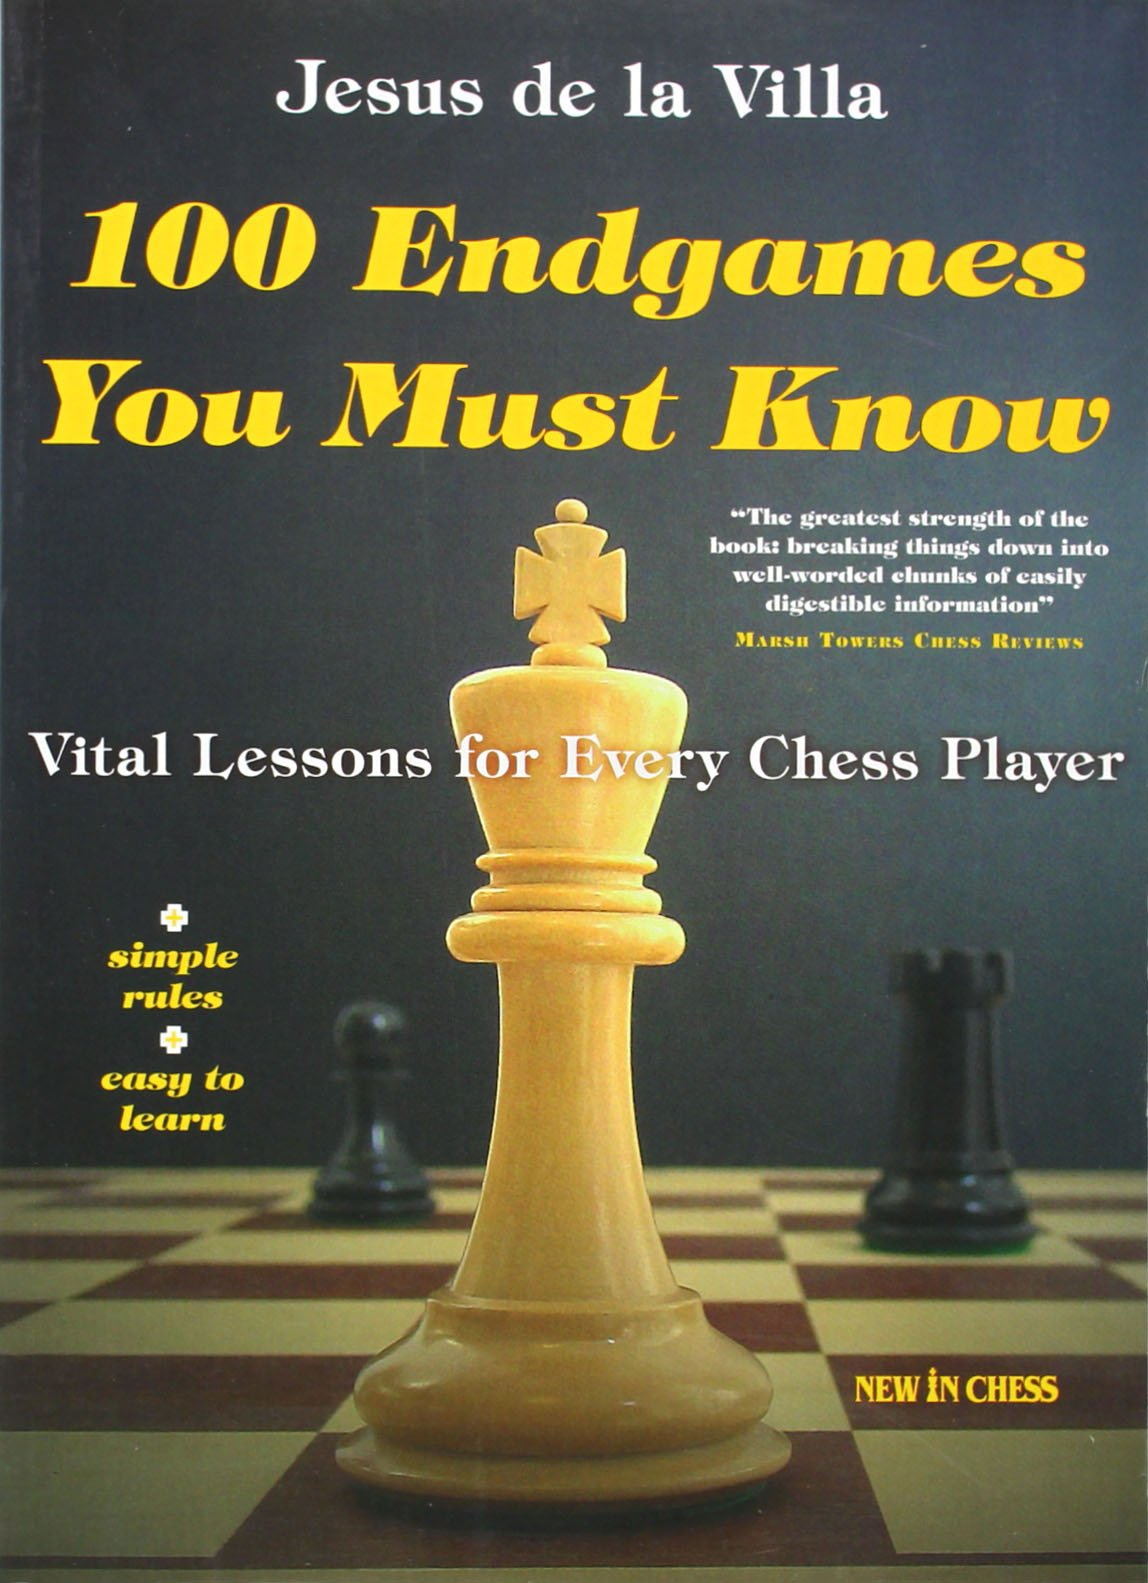 100 Endgames You Must Know: Vital Lessons for Every Chess Player Improved  and Expanded: Jesus de la Villa: 9789056912444: Amazon.com: Books